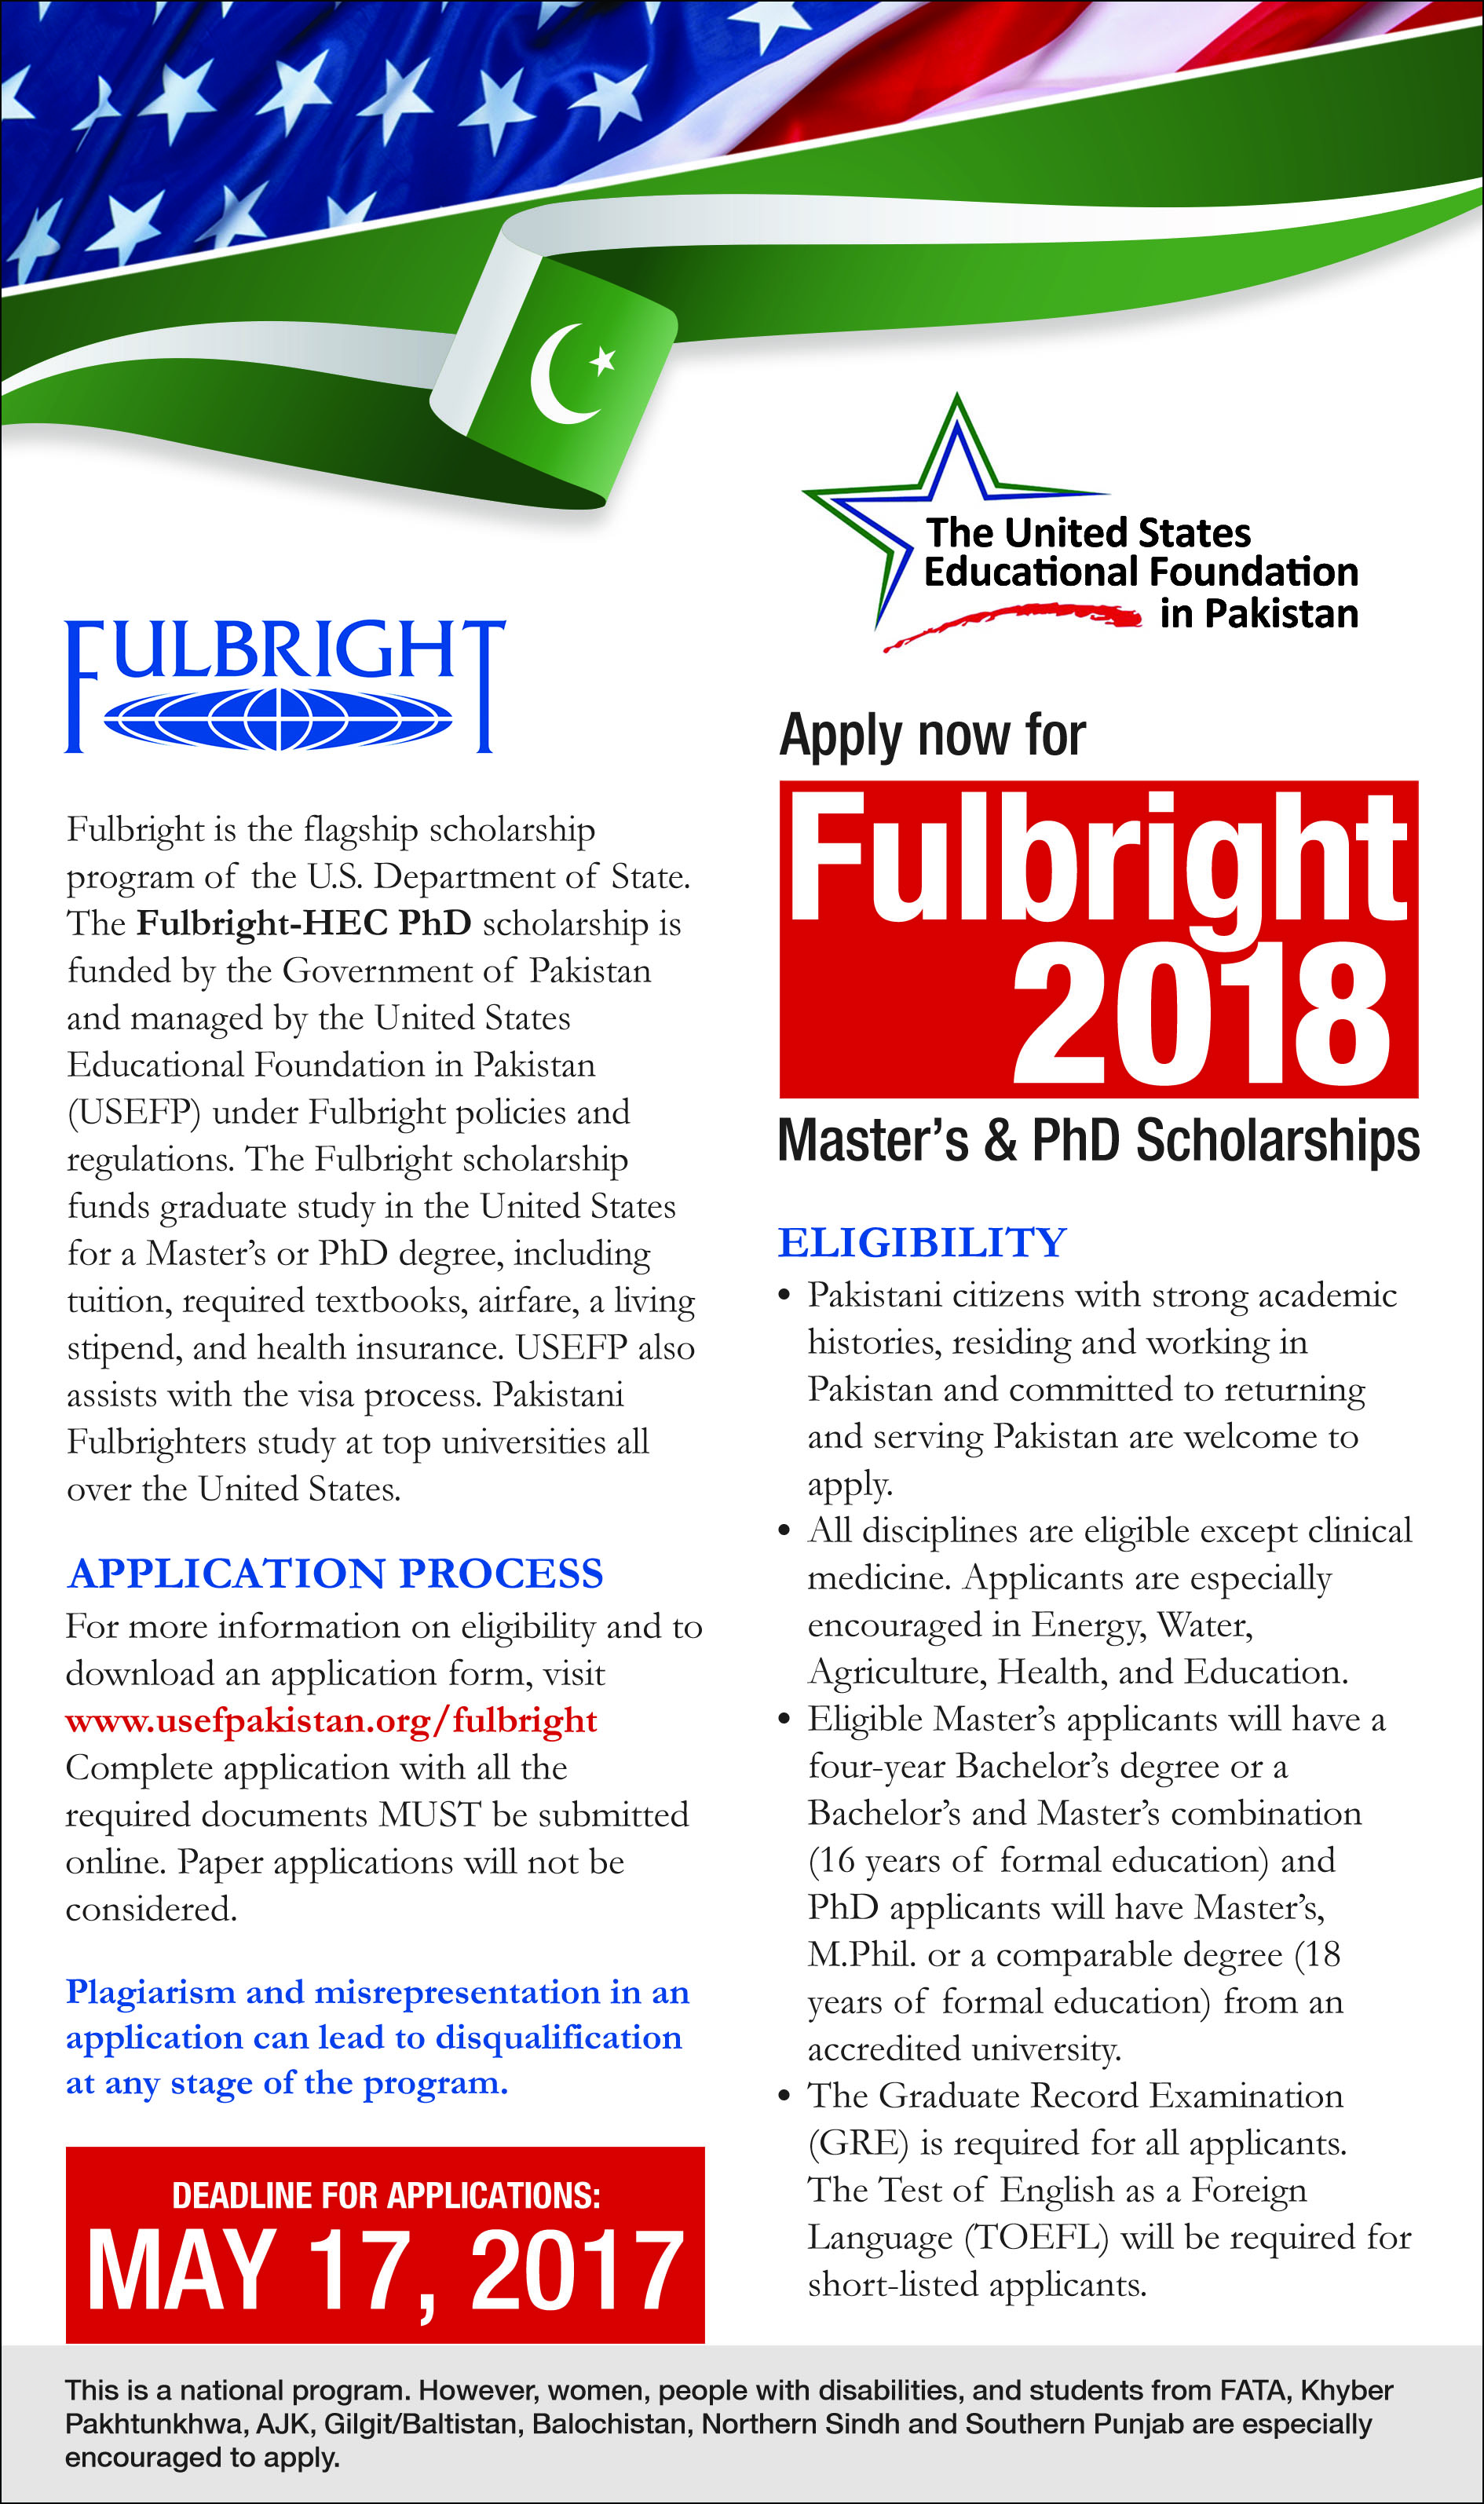 fulbright scholarship application essay The main goal of the fulbright scholarship/bursary program is to bring a common appreciation between people of the two countries with an exchange program.